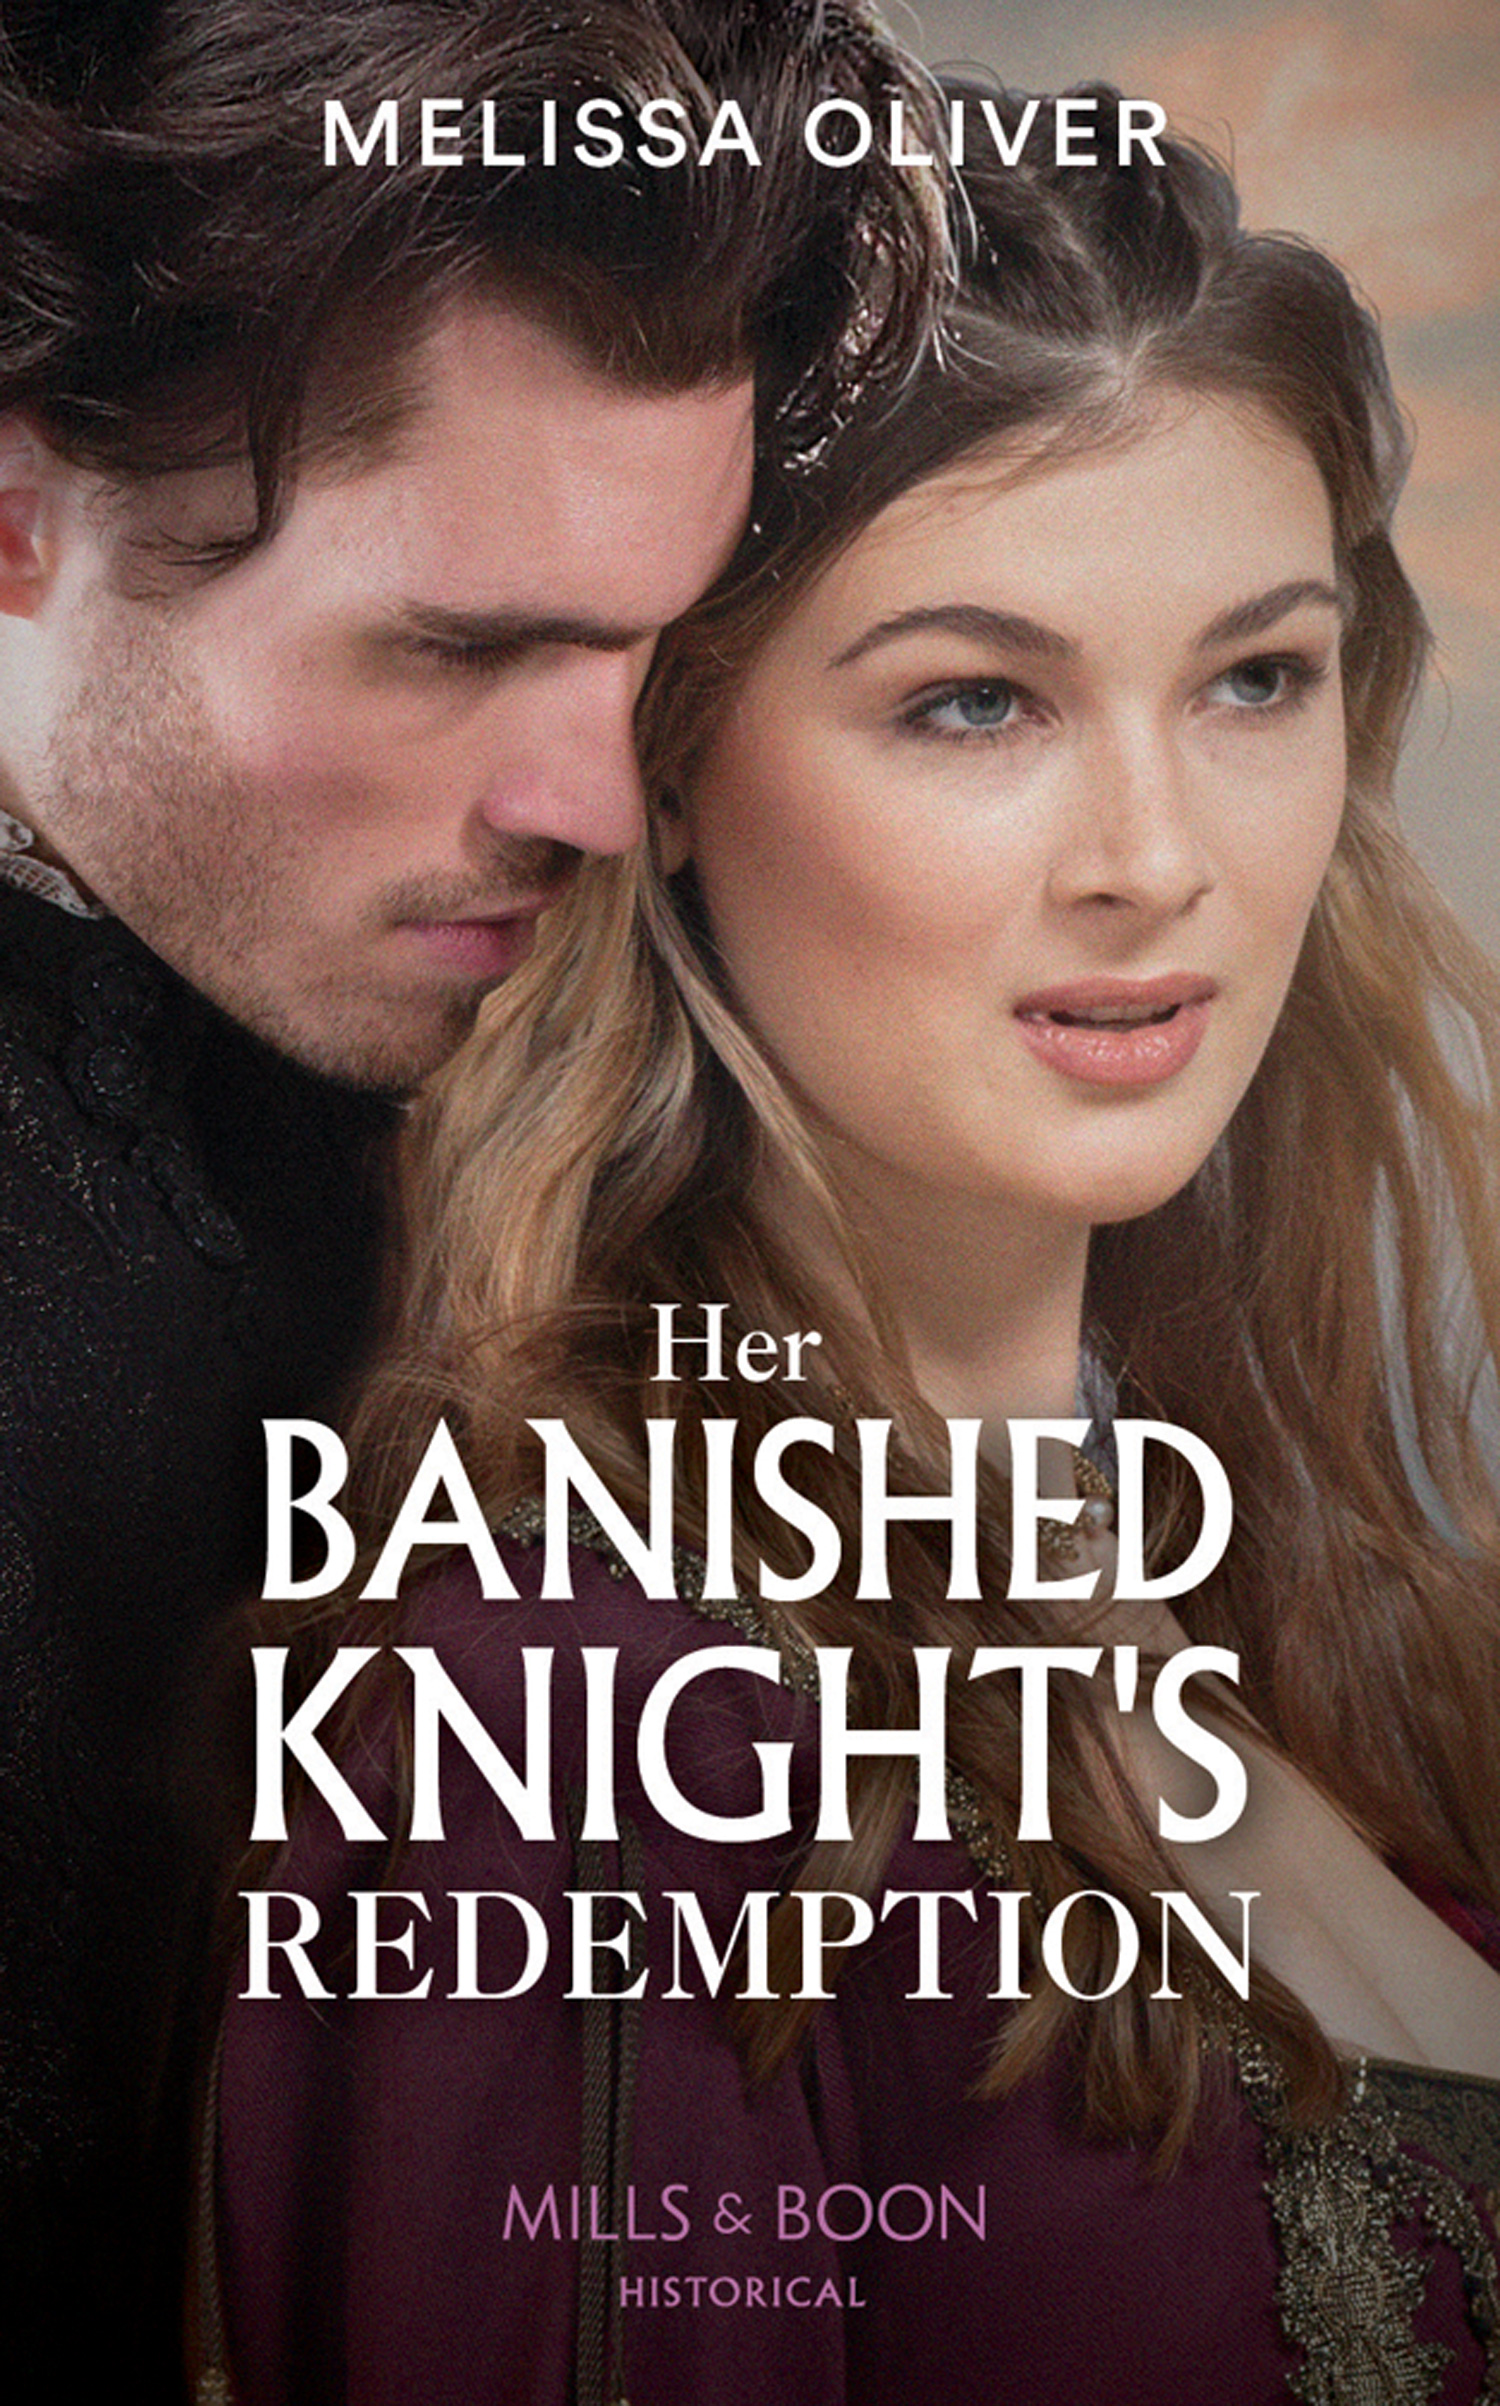 Mills&Boon cover for Her Banished Knight's Redemption